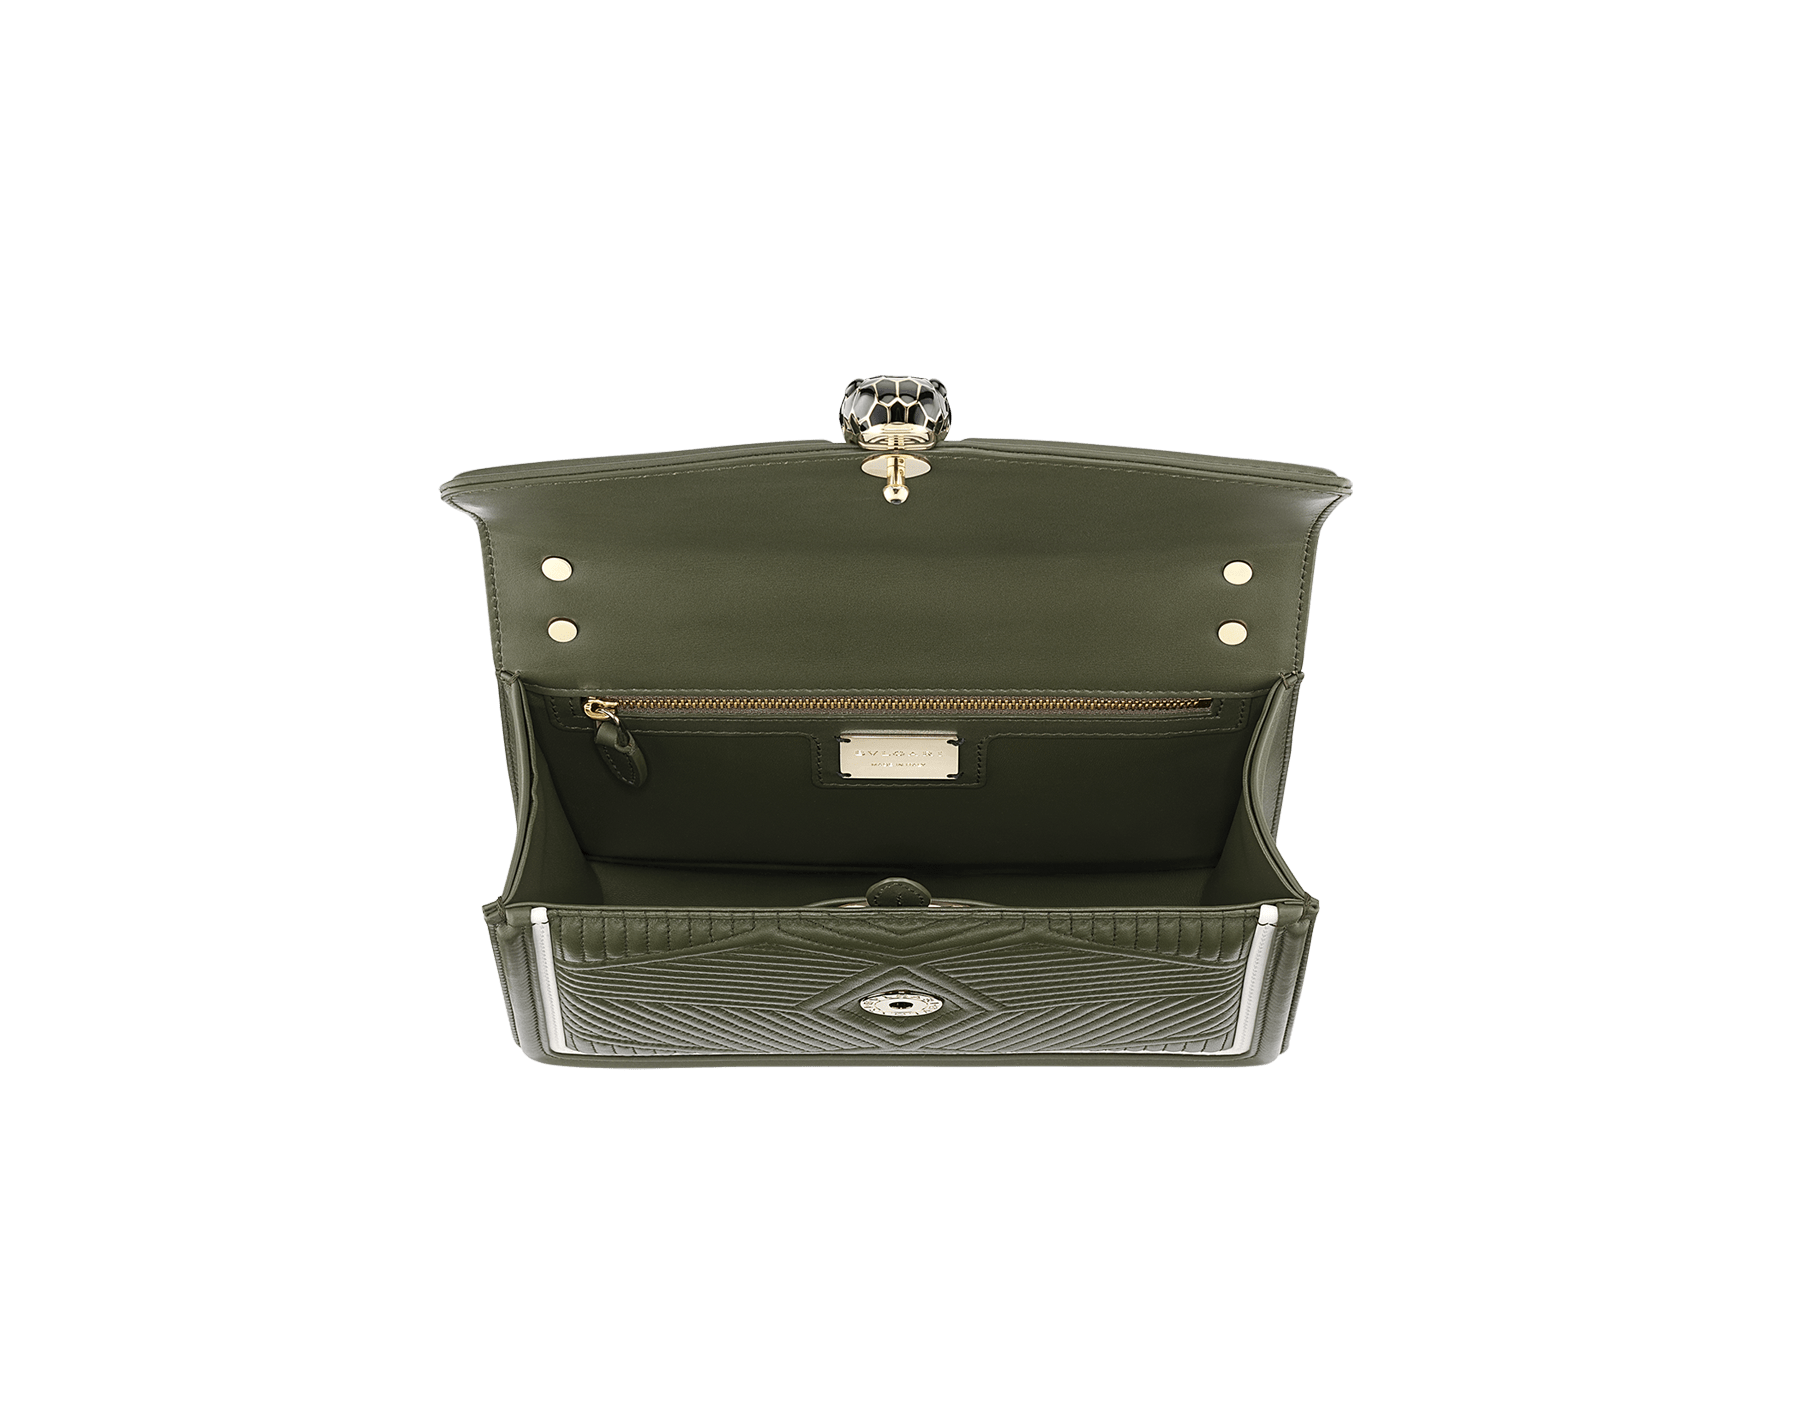 """""""Serpenti Diamond Blast"""" shoulder bag in mimetic jade quilted nappa leather and mimetic jade smooth calf leather frames. Iconic snakehead closure in light gold plated brass enriched with matte black and shiny mimetic jade enamel and black onyx eyes. 289731 image 2"""